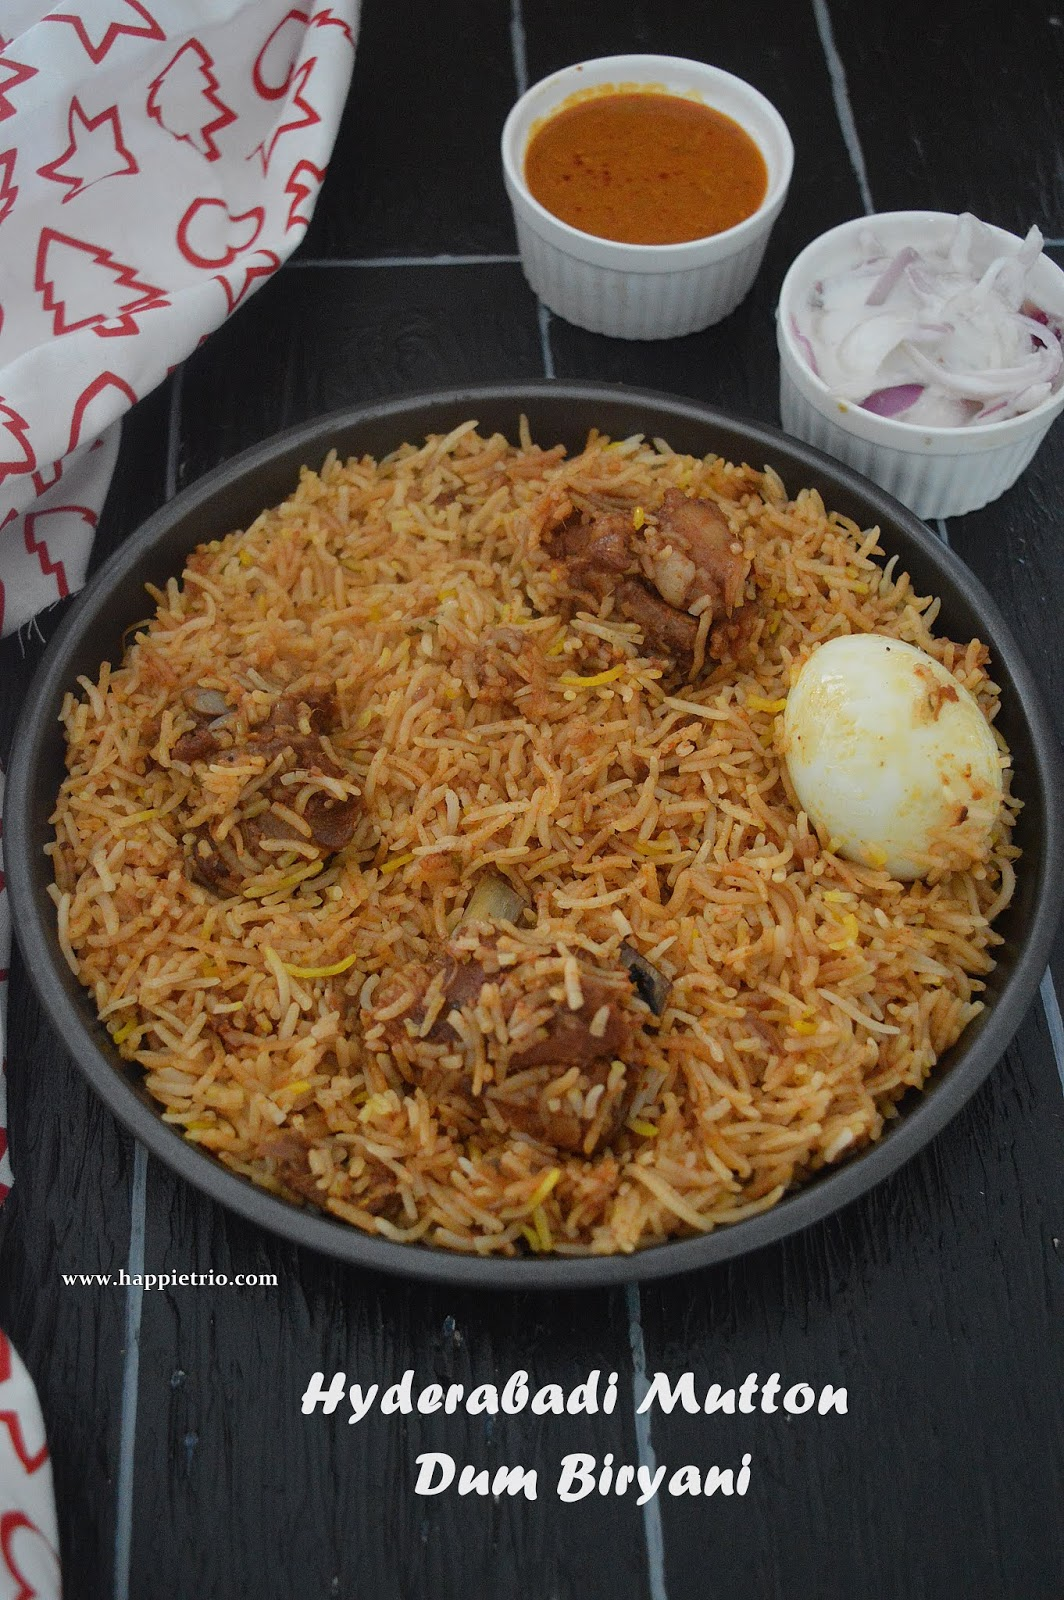 Hyderabadi Mutton Dum Biryani Recipe | How to cook Hyderabadi Stype Mutton Dum Biryani